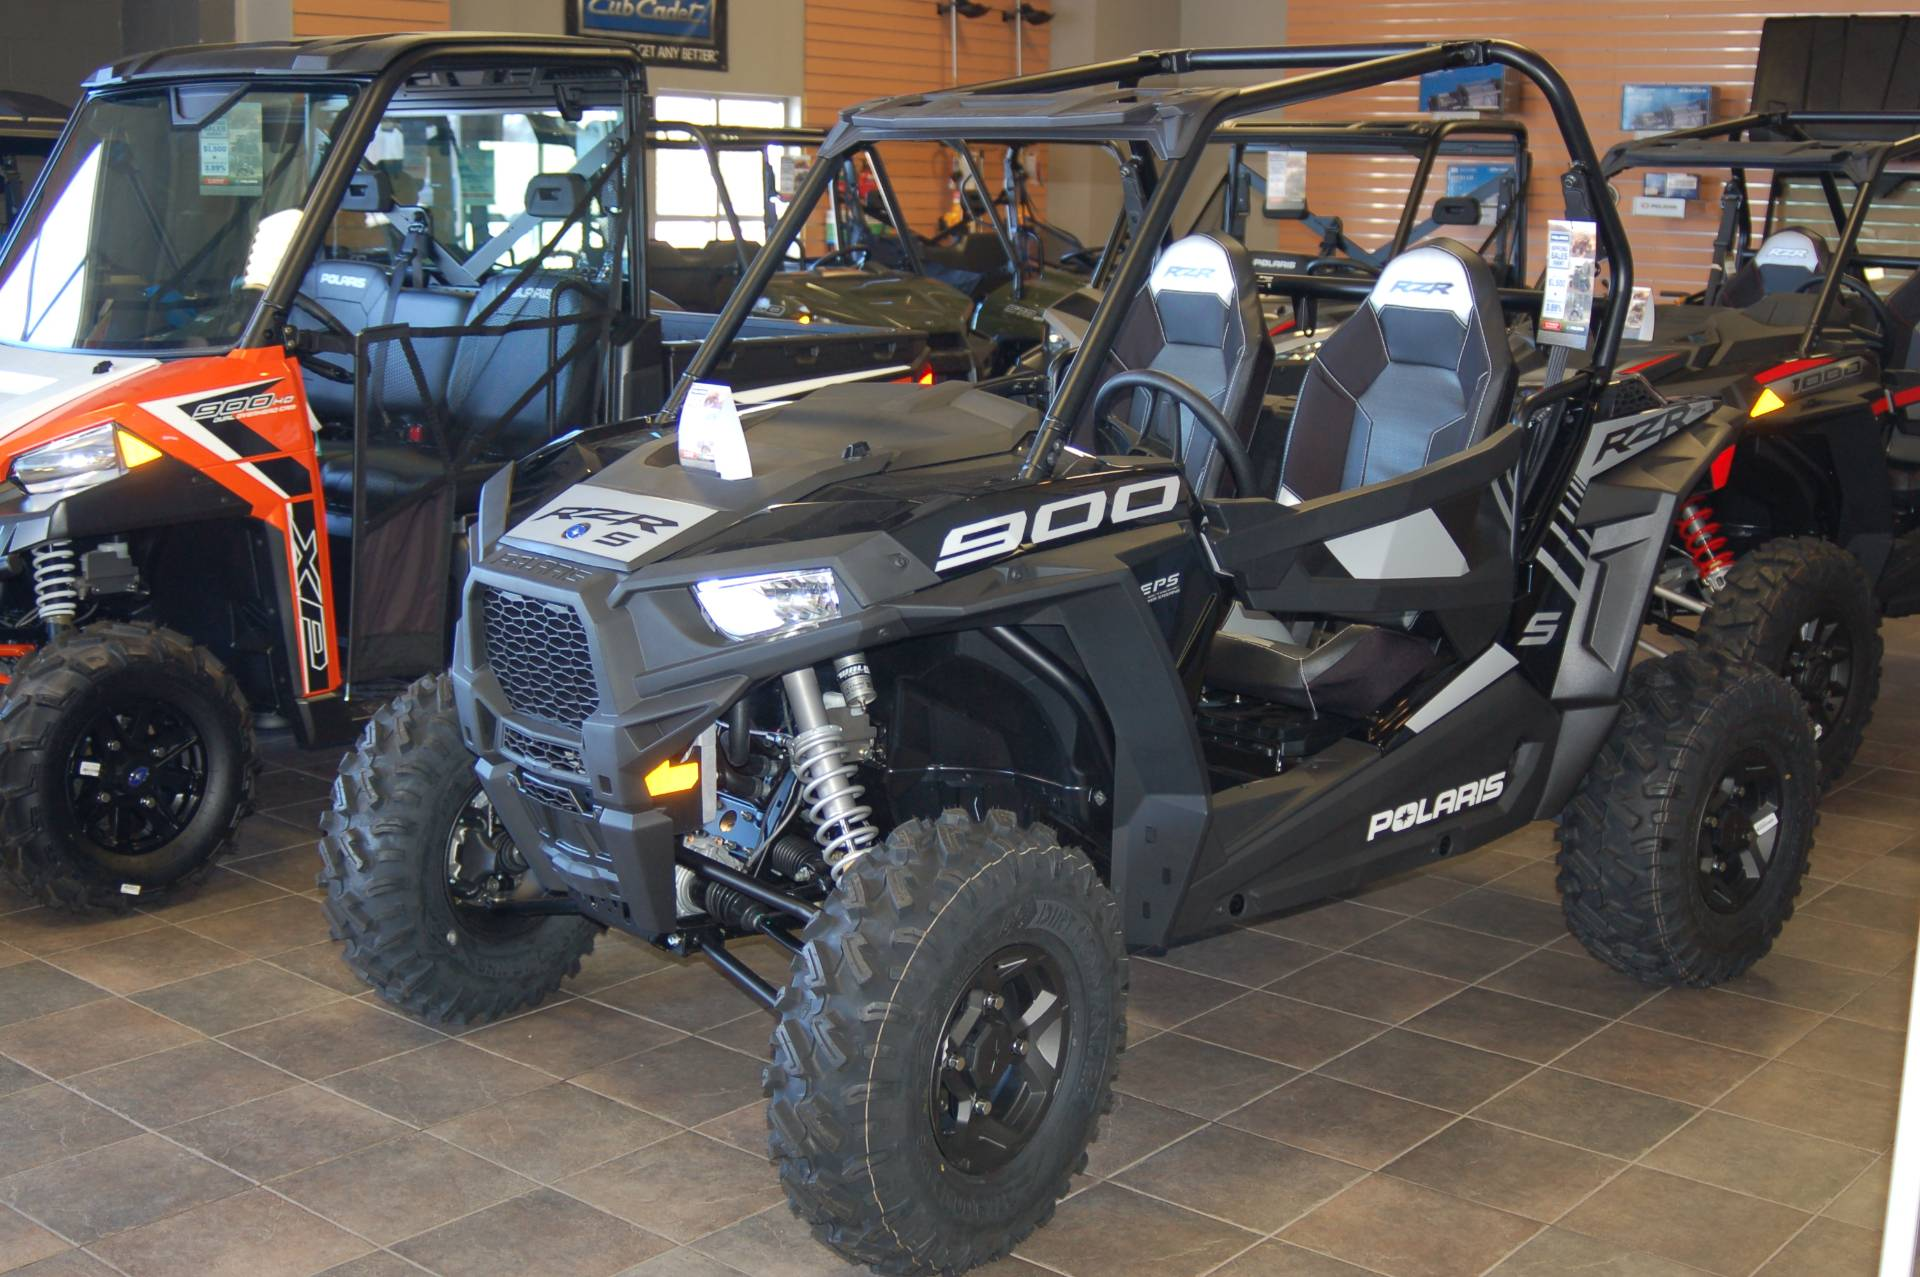 2019 Polaris RZR S 900 EPS in Sturgeon Bay, Wisconsin - Photo 1